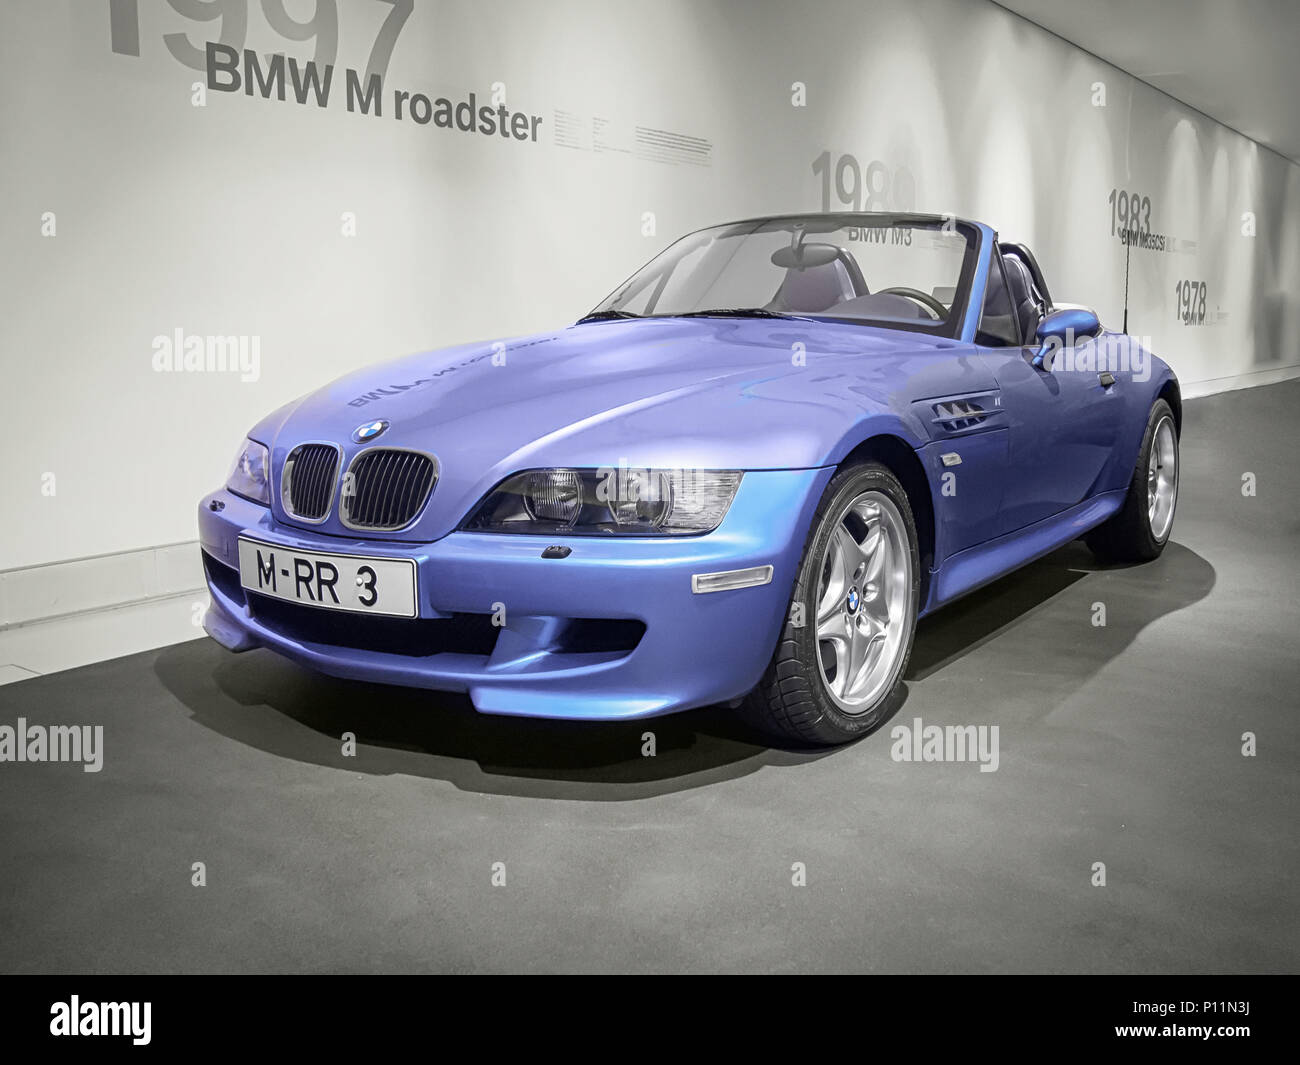 Bmw Z3 Roadster High Resolution Stock Photography And Images Alamy